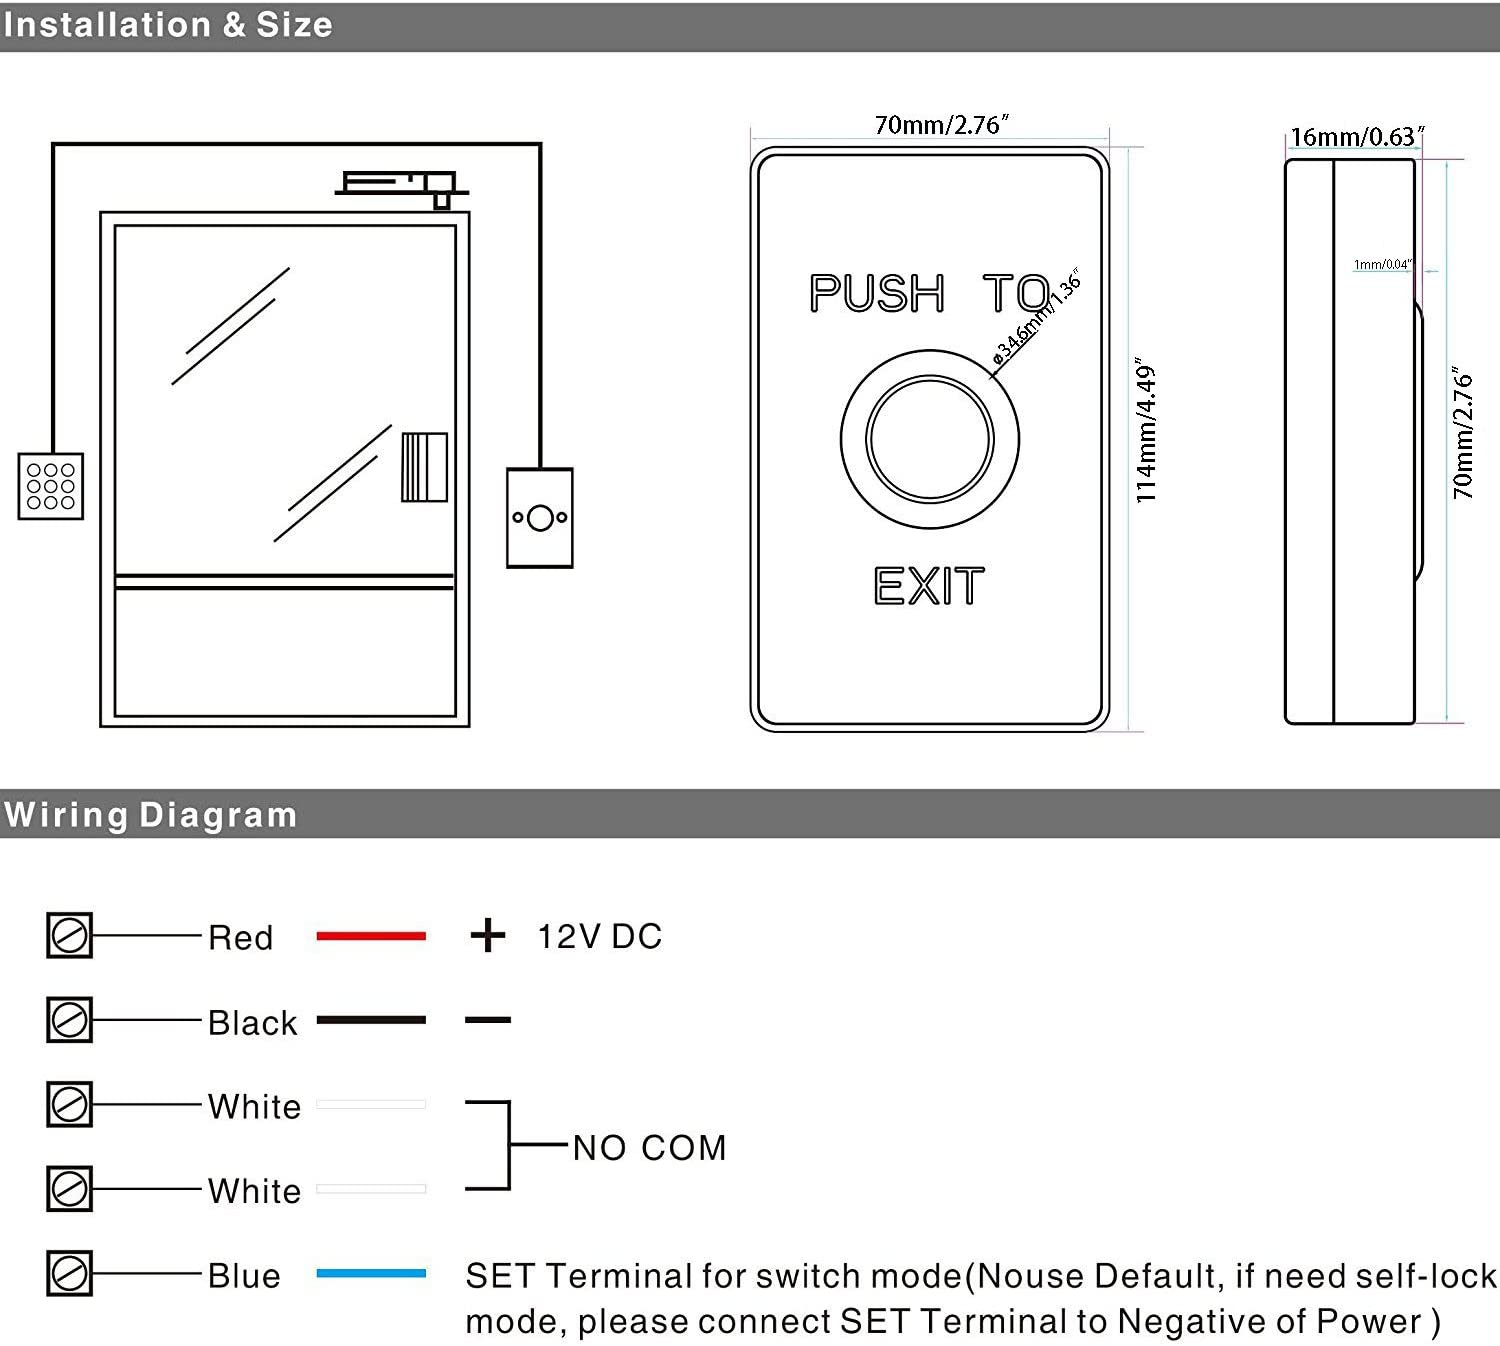 Piezoelectric Release Out Unlock Push To Exit Button Switch Sensor W/ Led Light  Camera & Photo